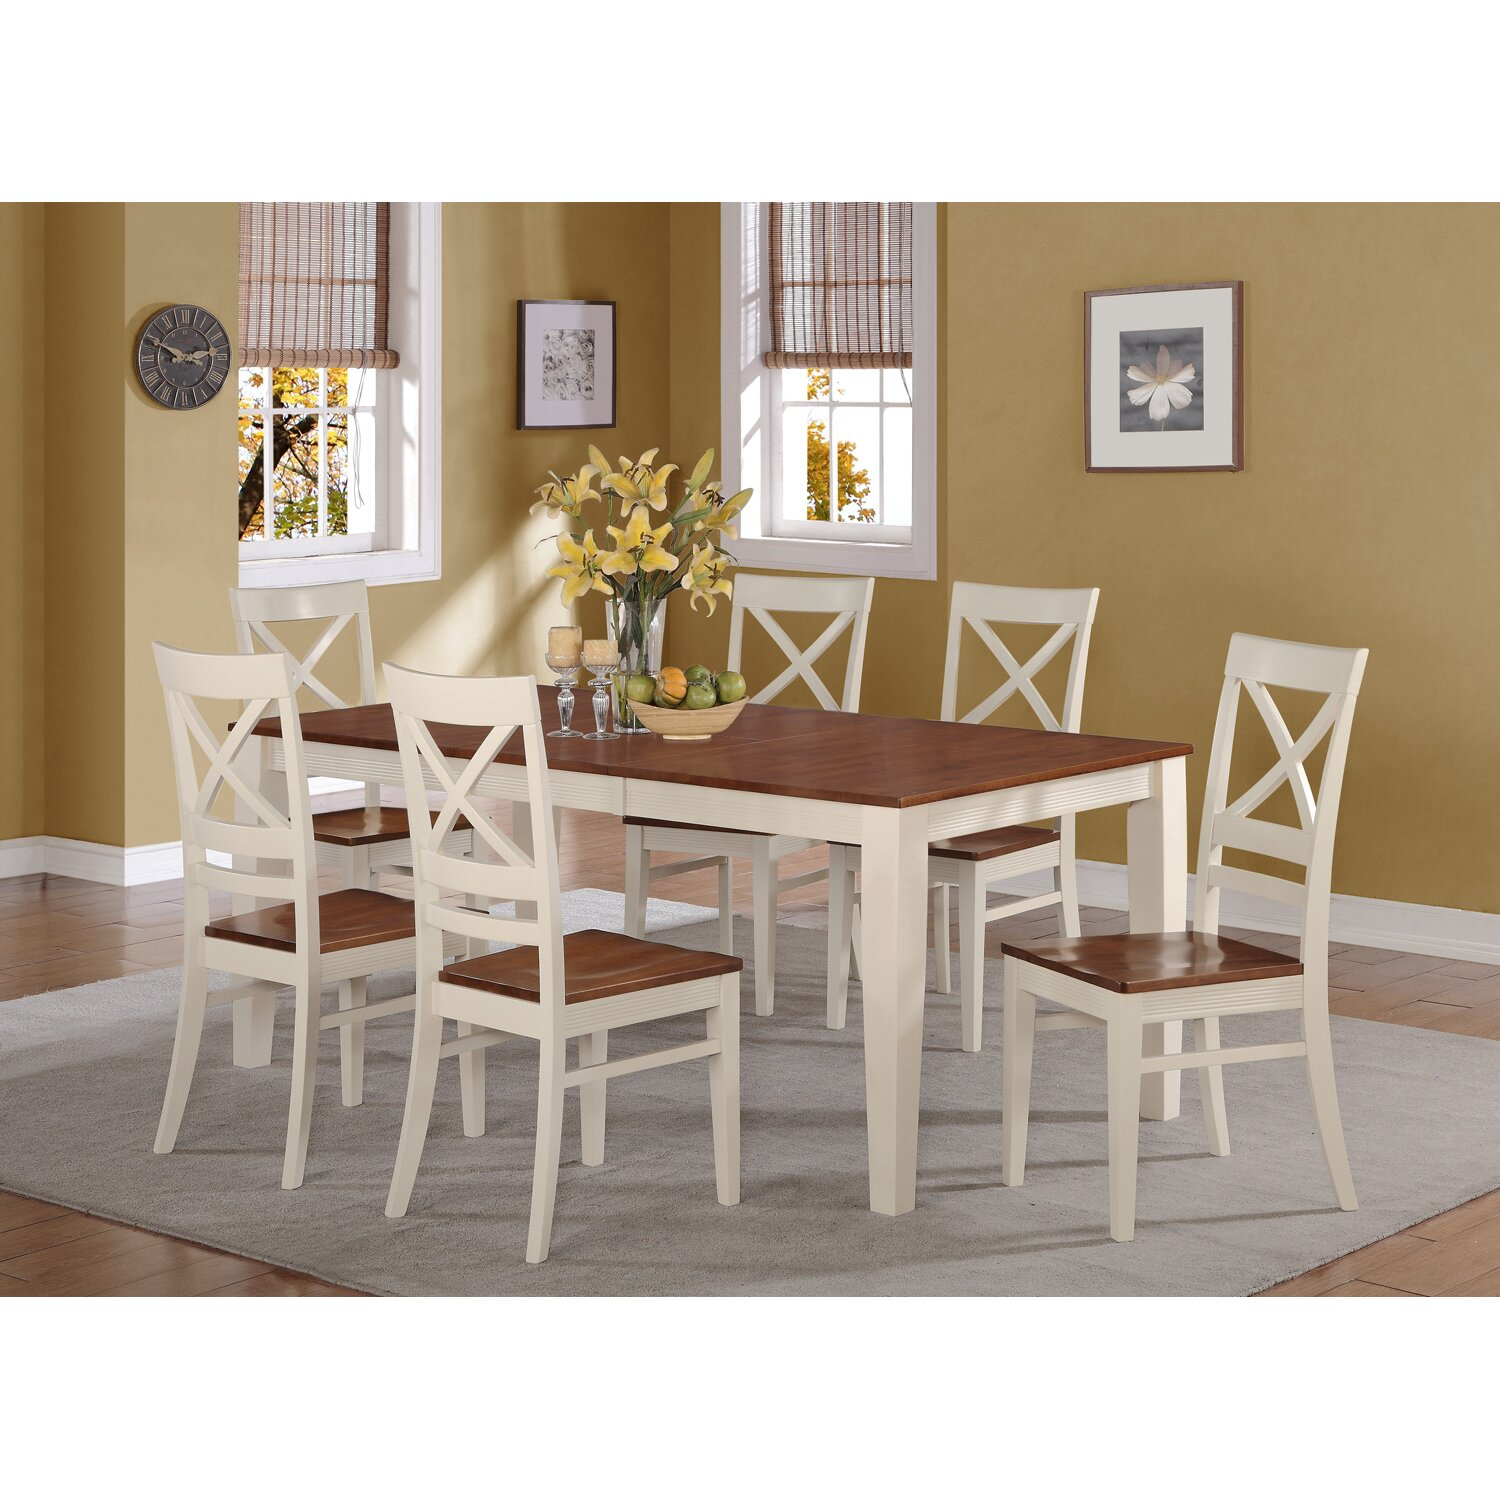 Wooden Importers 3 Piece Dining Set Reviews: Wooden Importers Quincy 7 Piece Dining Set & Reviews